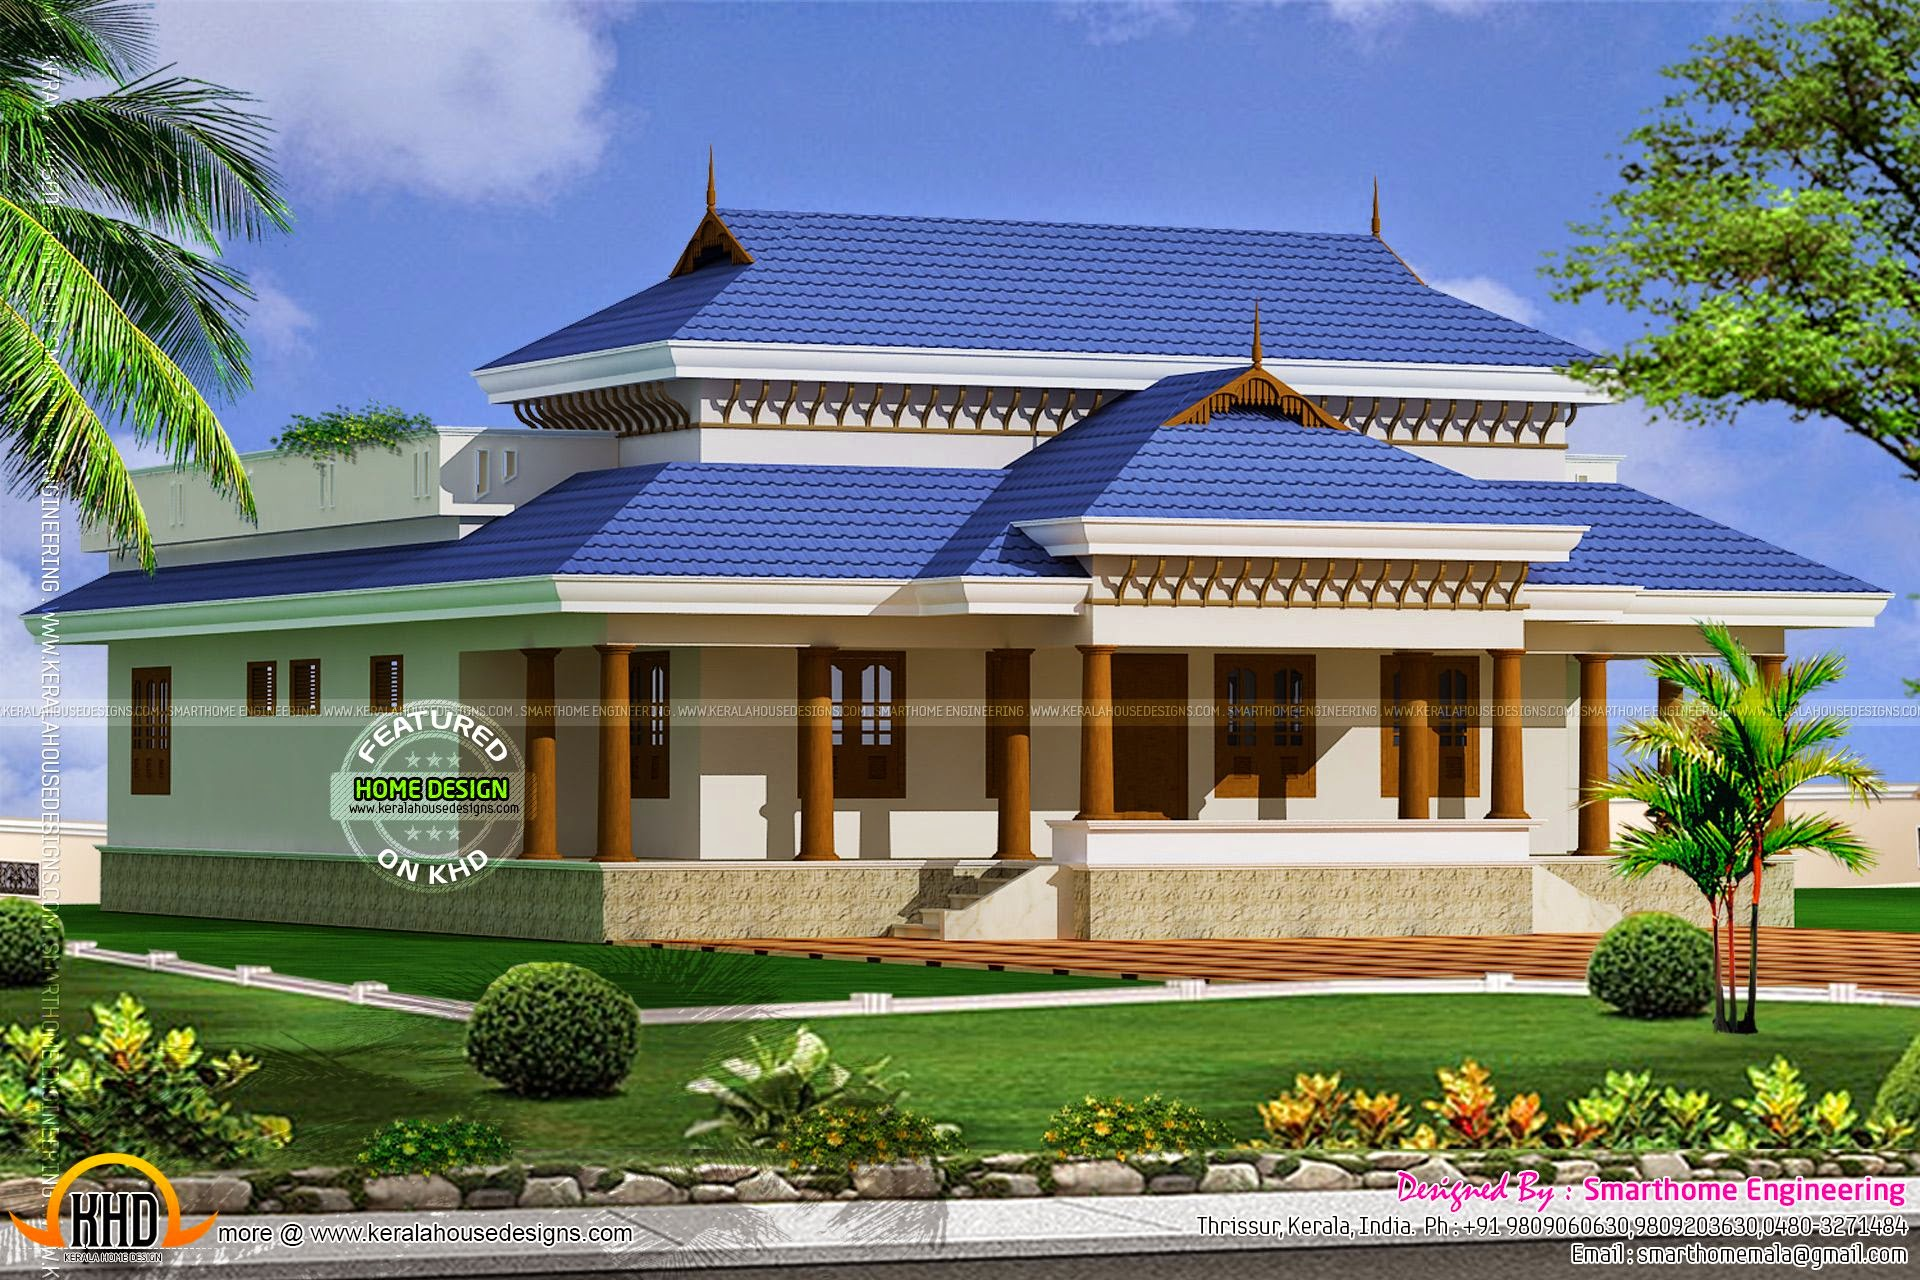 Old homes in kerala images for Home models in kerala